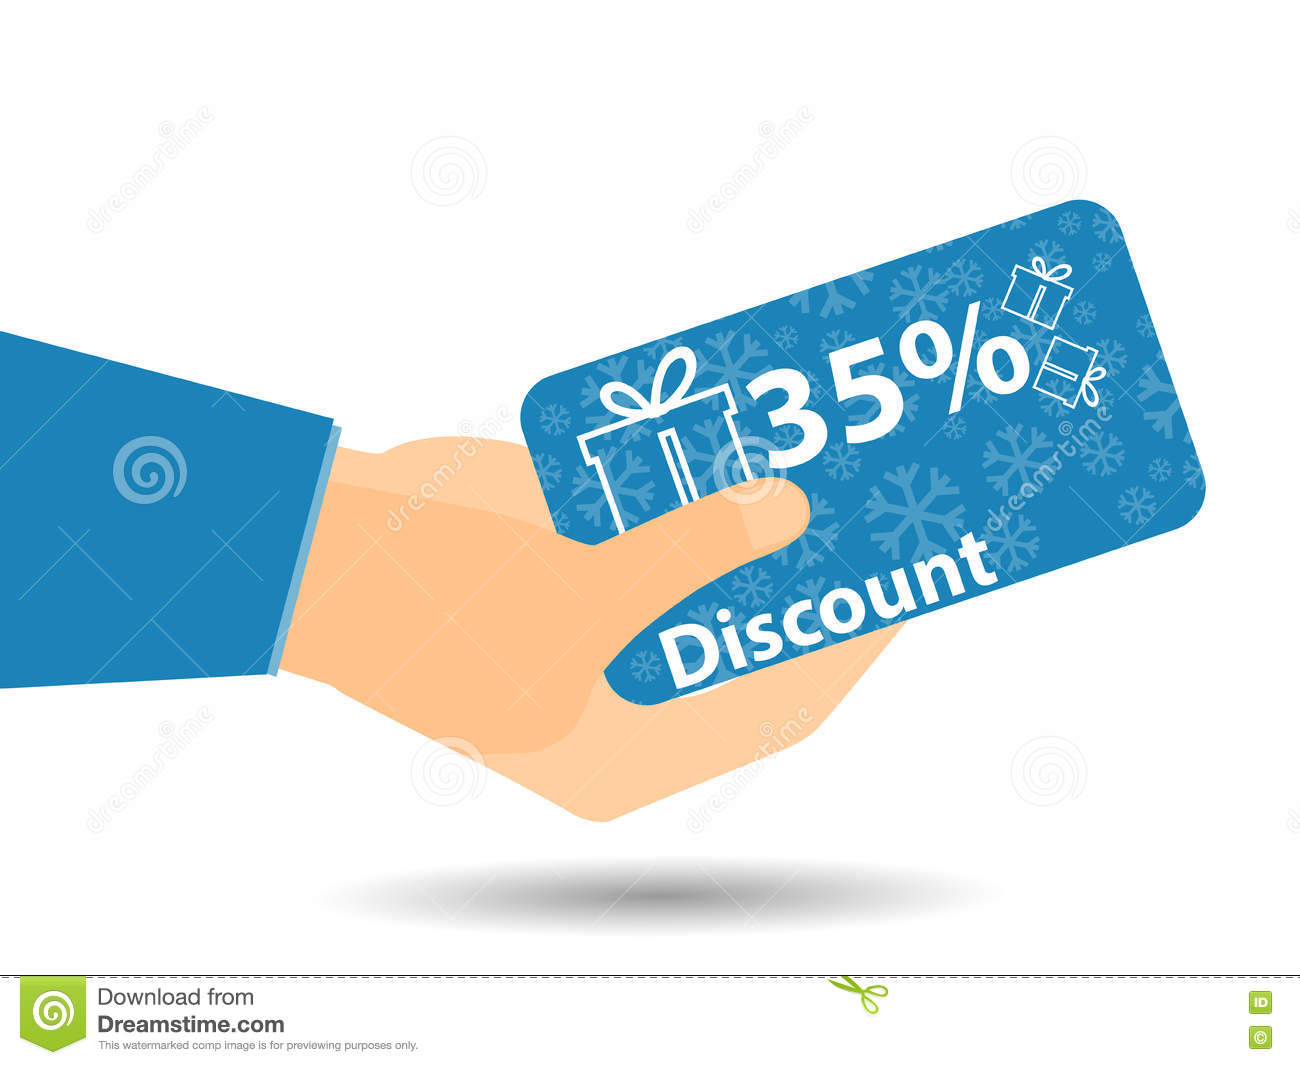 Tutor time discount coupons